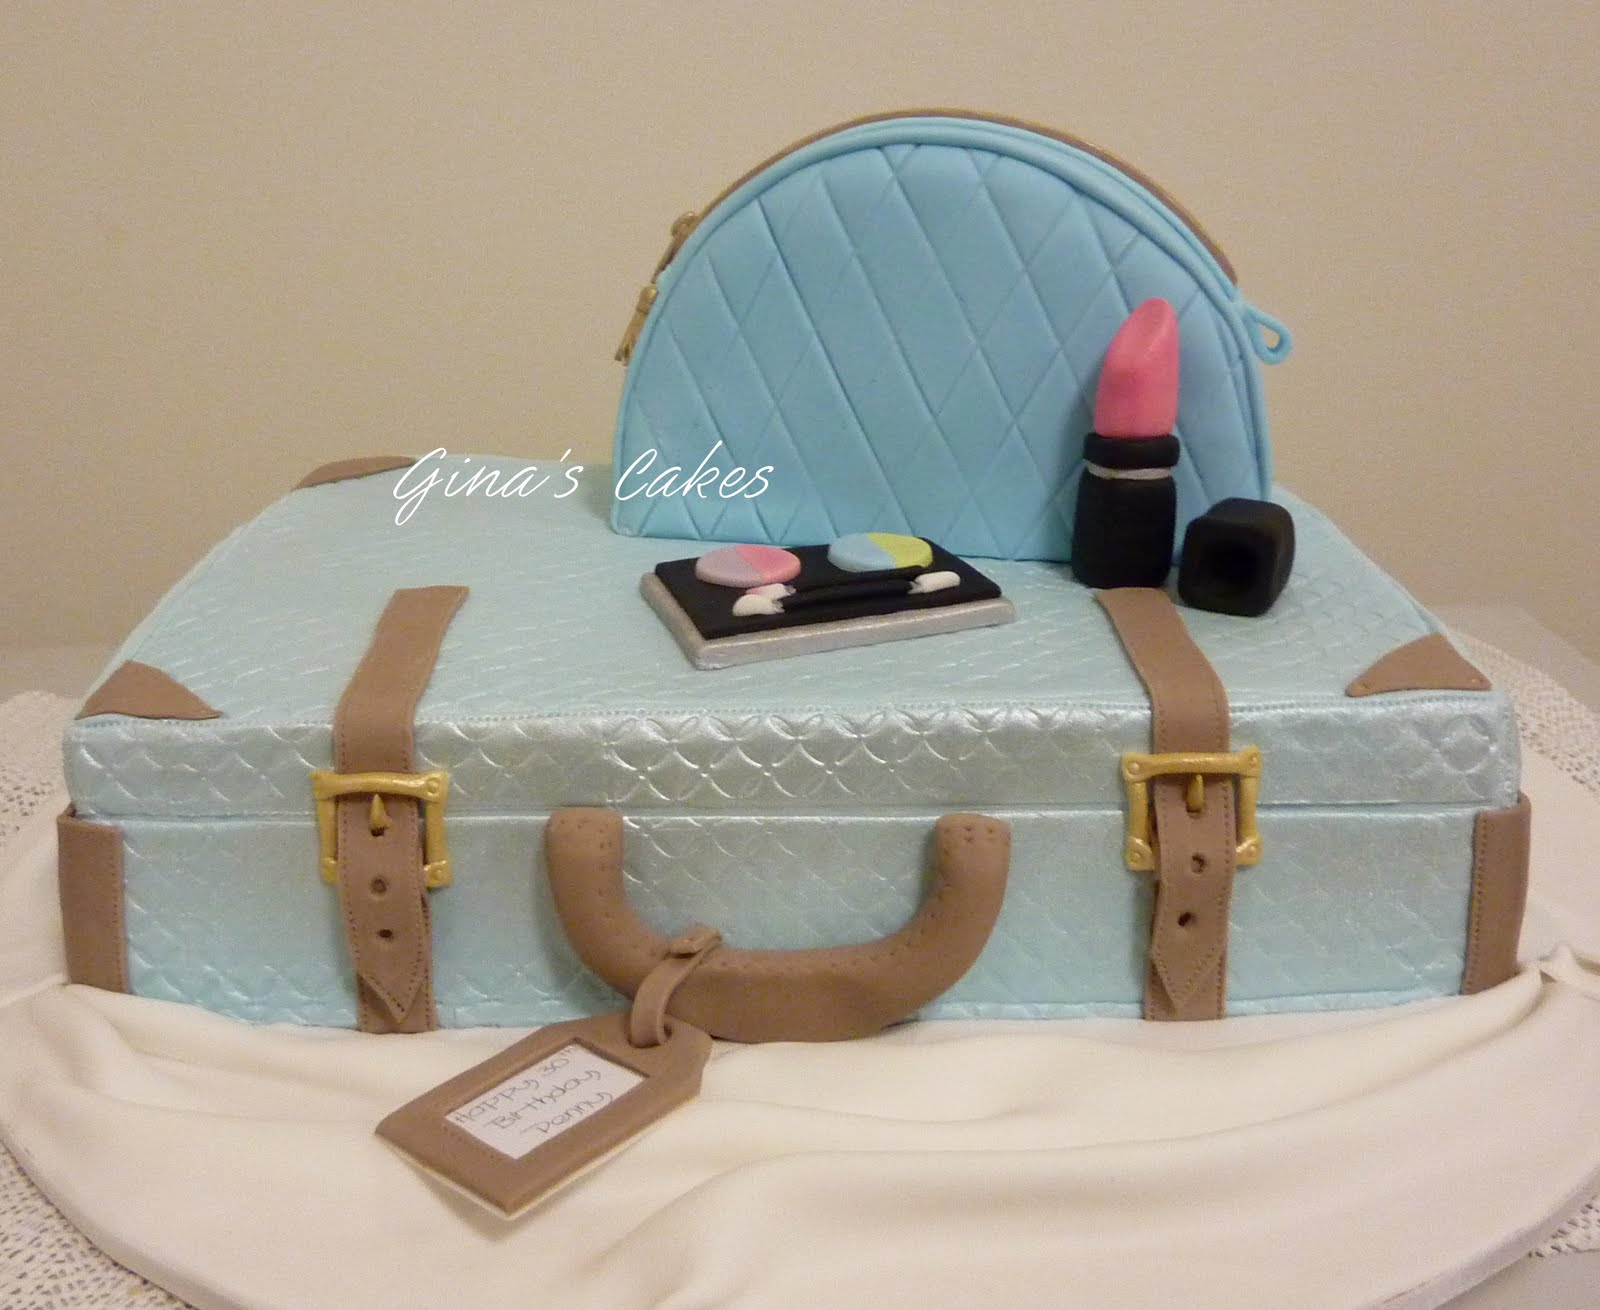 Top That Suitcase Make Up Bag Cake Pennys 30th Birthday